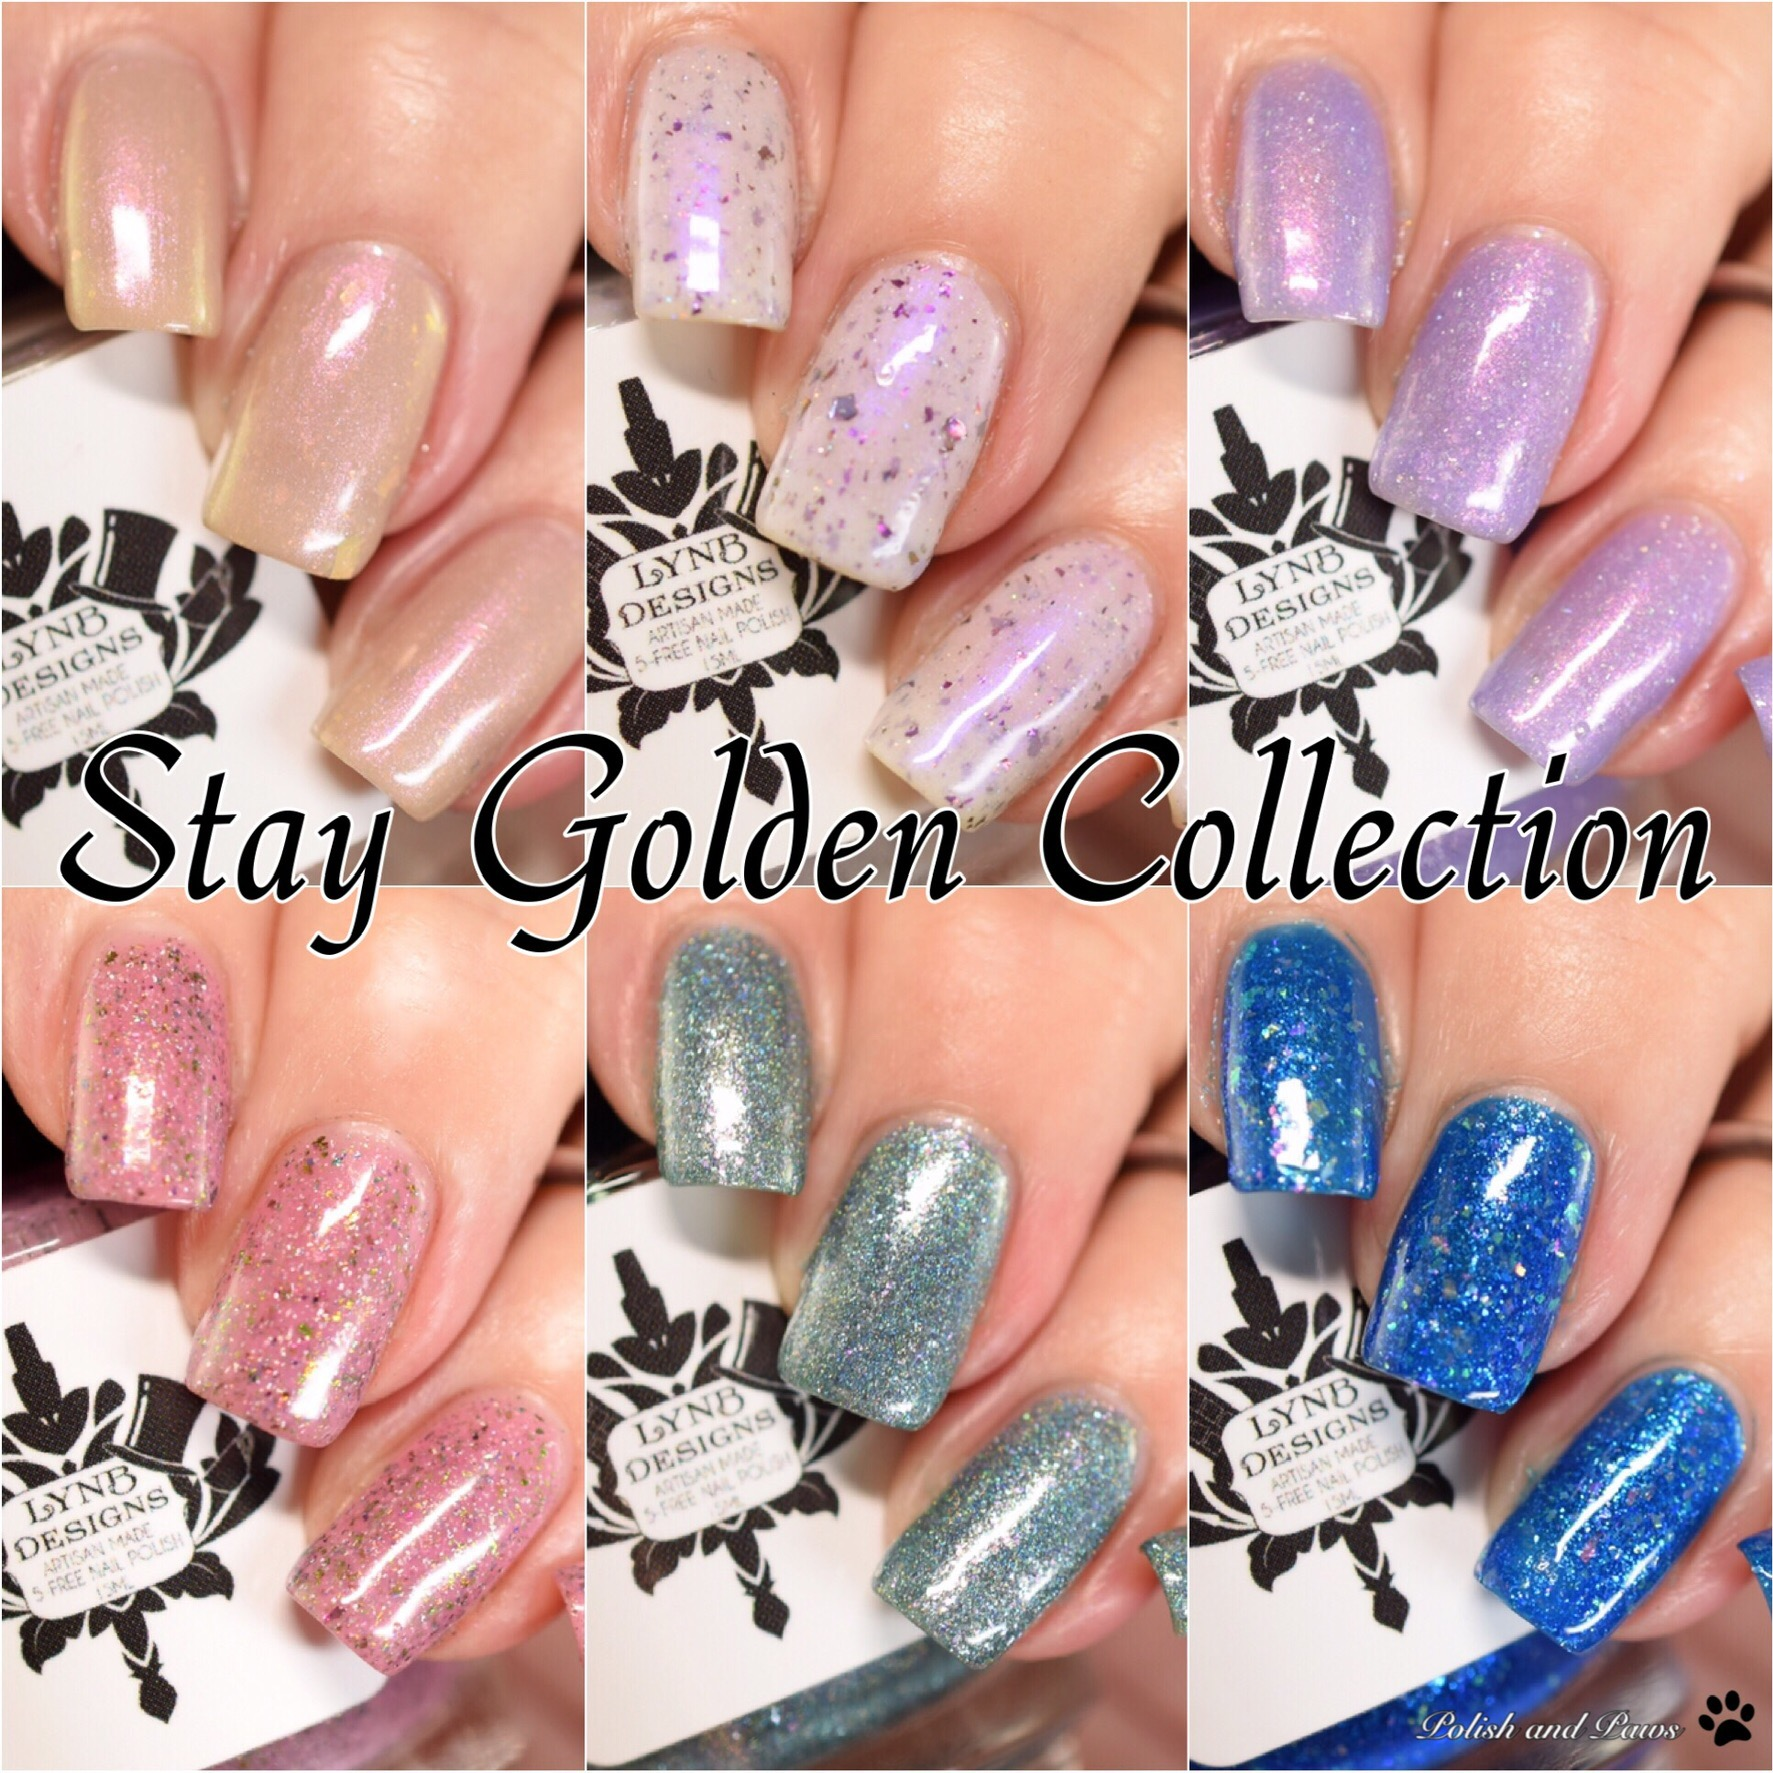 LynB Designs Stay Golden Collection